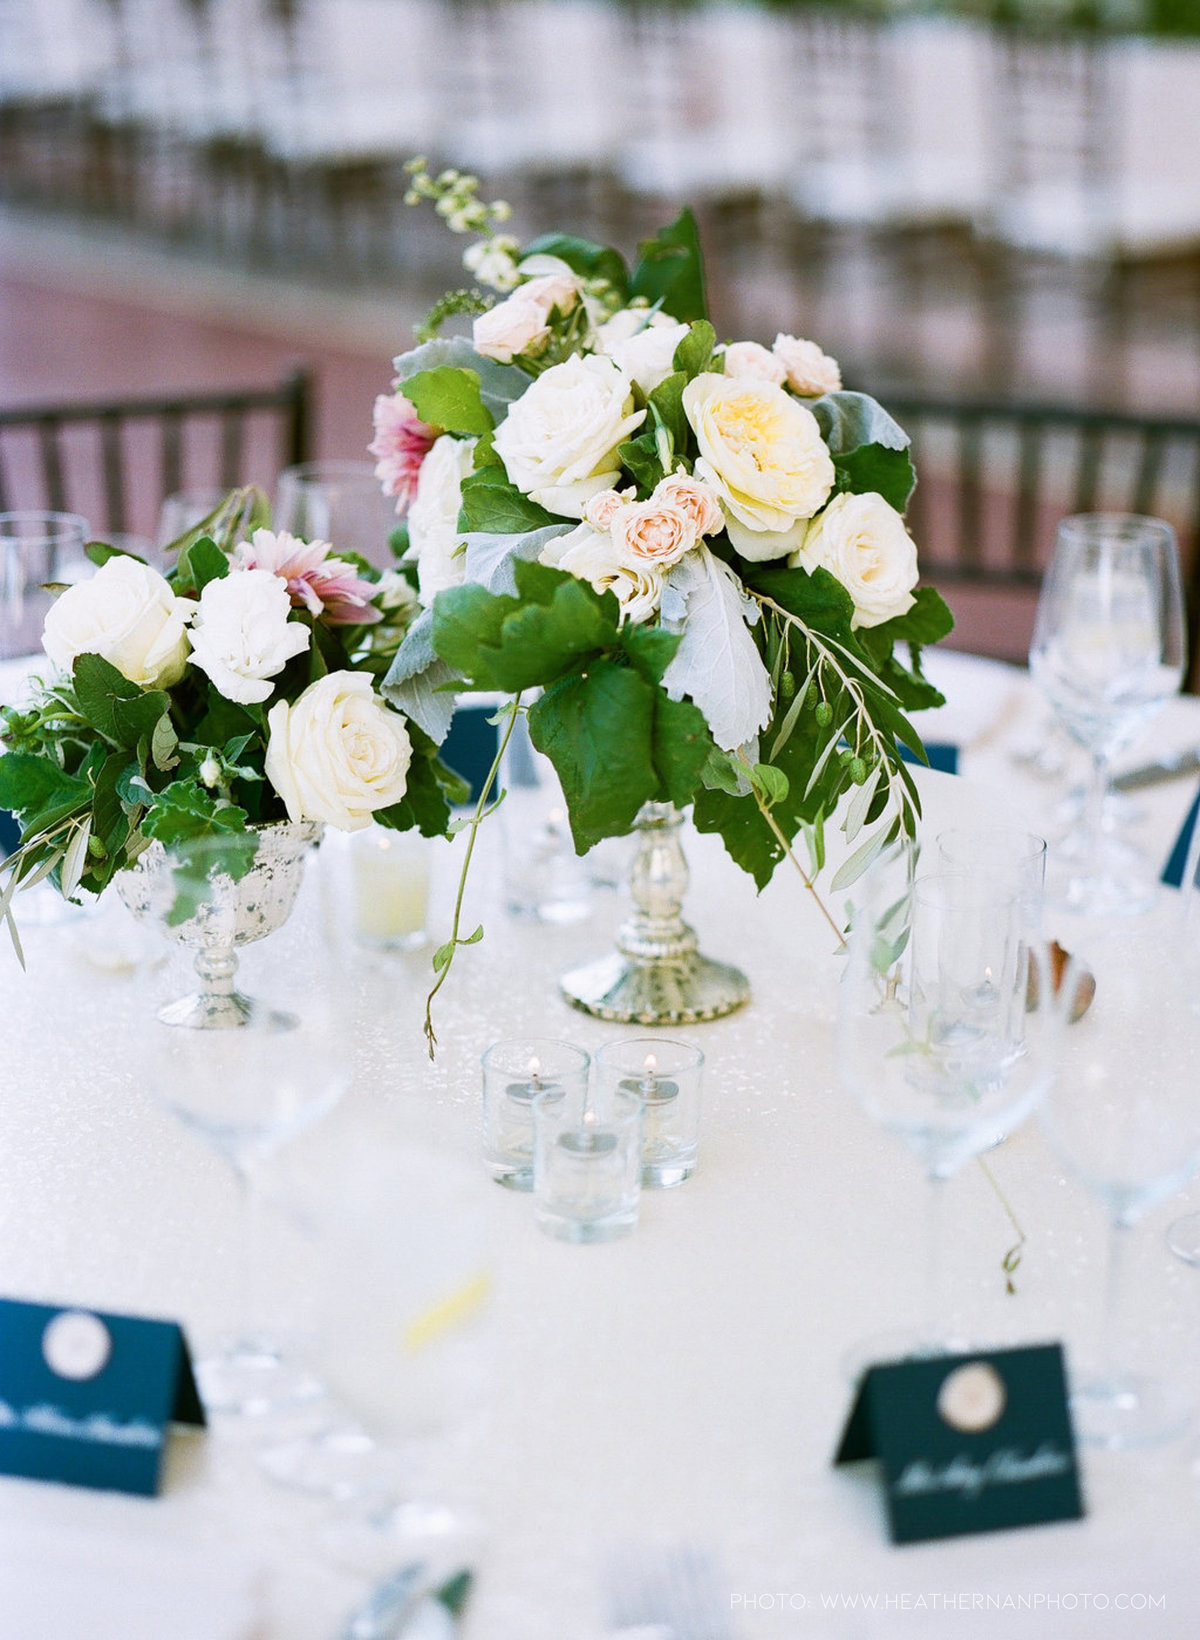 Utah Florist_Summer Weddings in Park City_Romantic Wedding_Luxe Mountain Weddings_Stein Eriksen Lodge Weddings_Artisan Bloom-0099